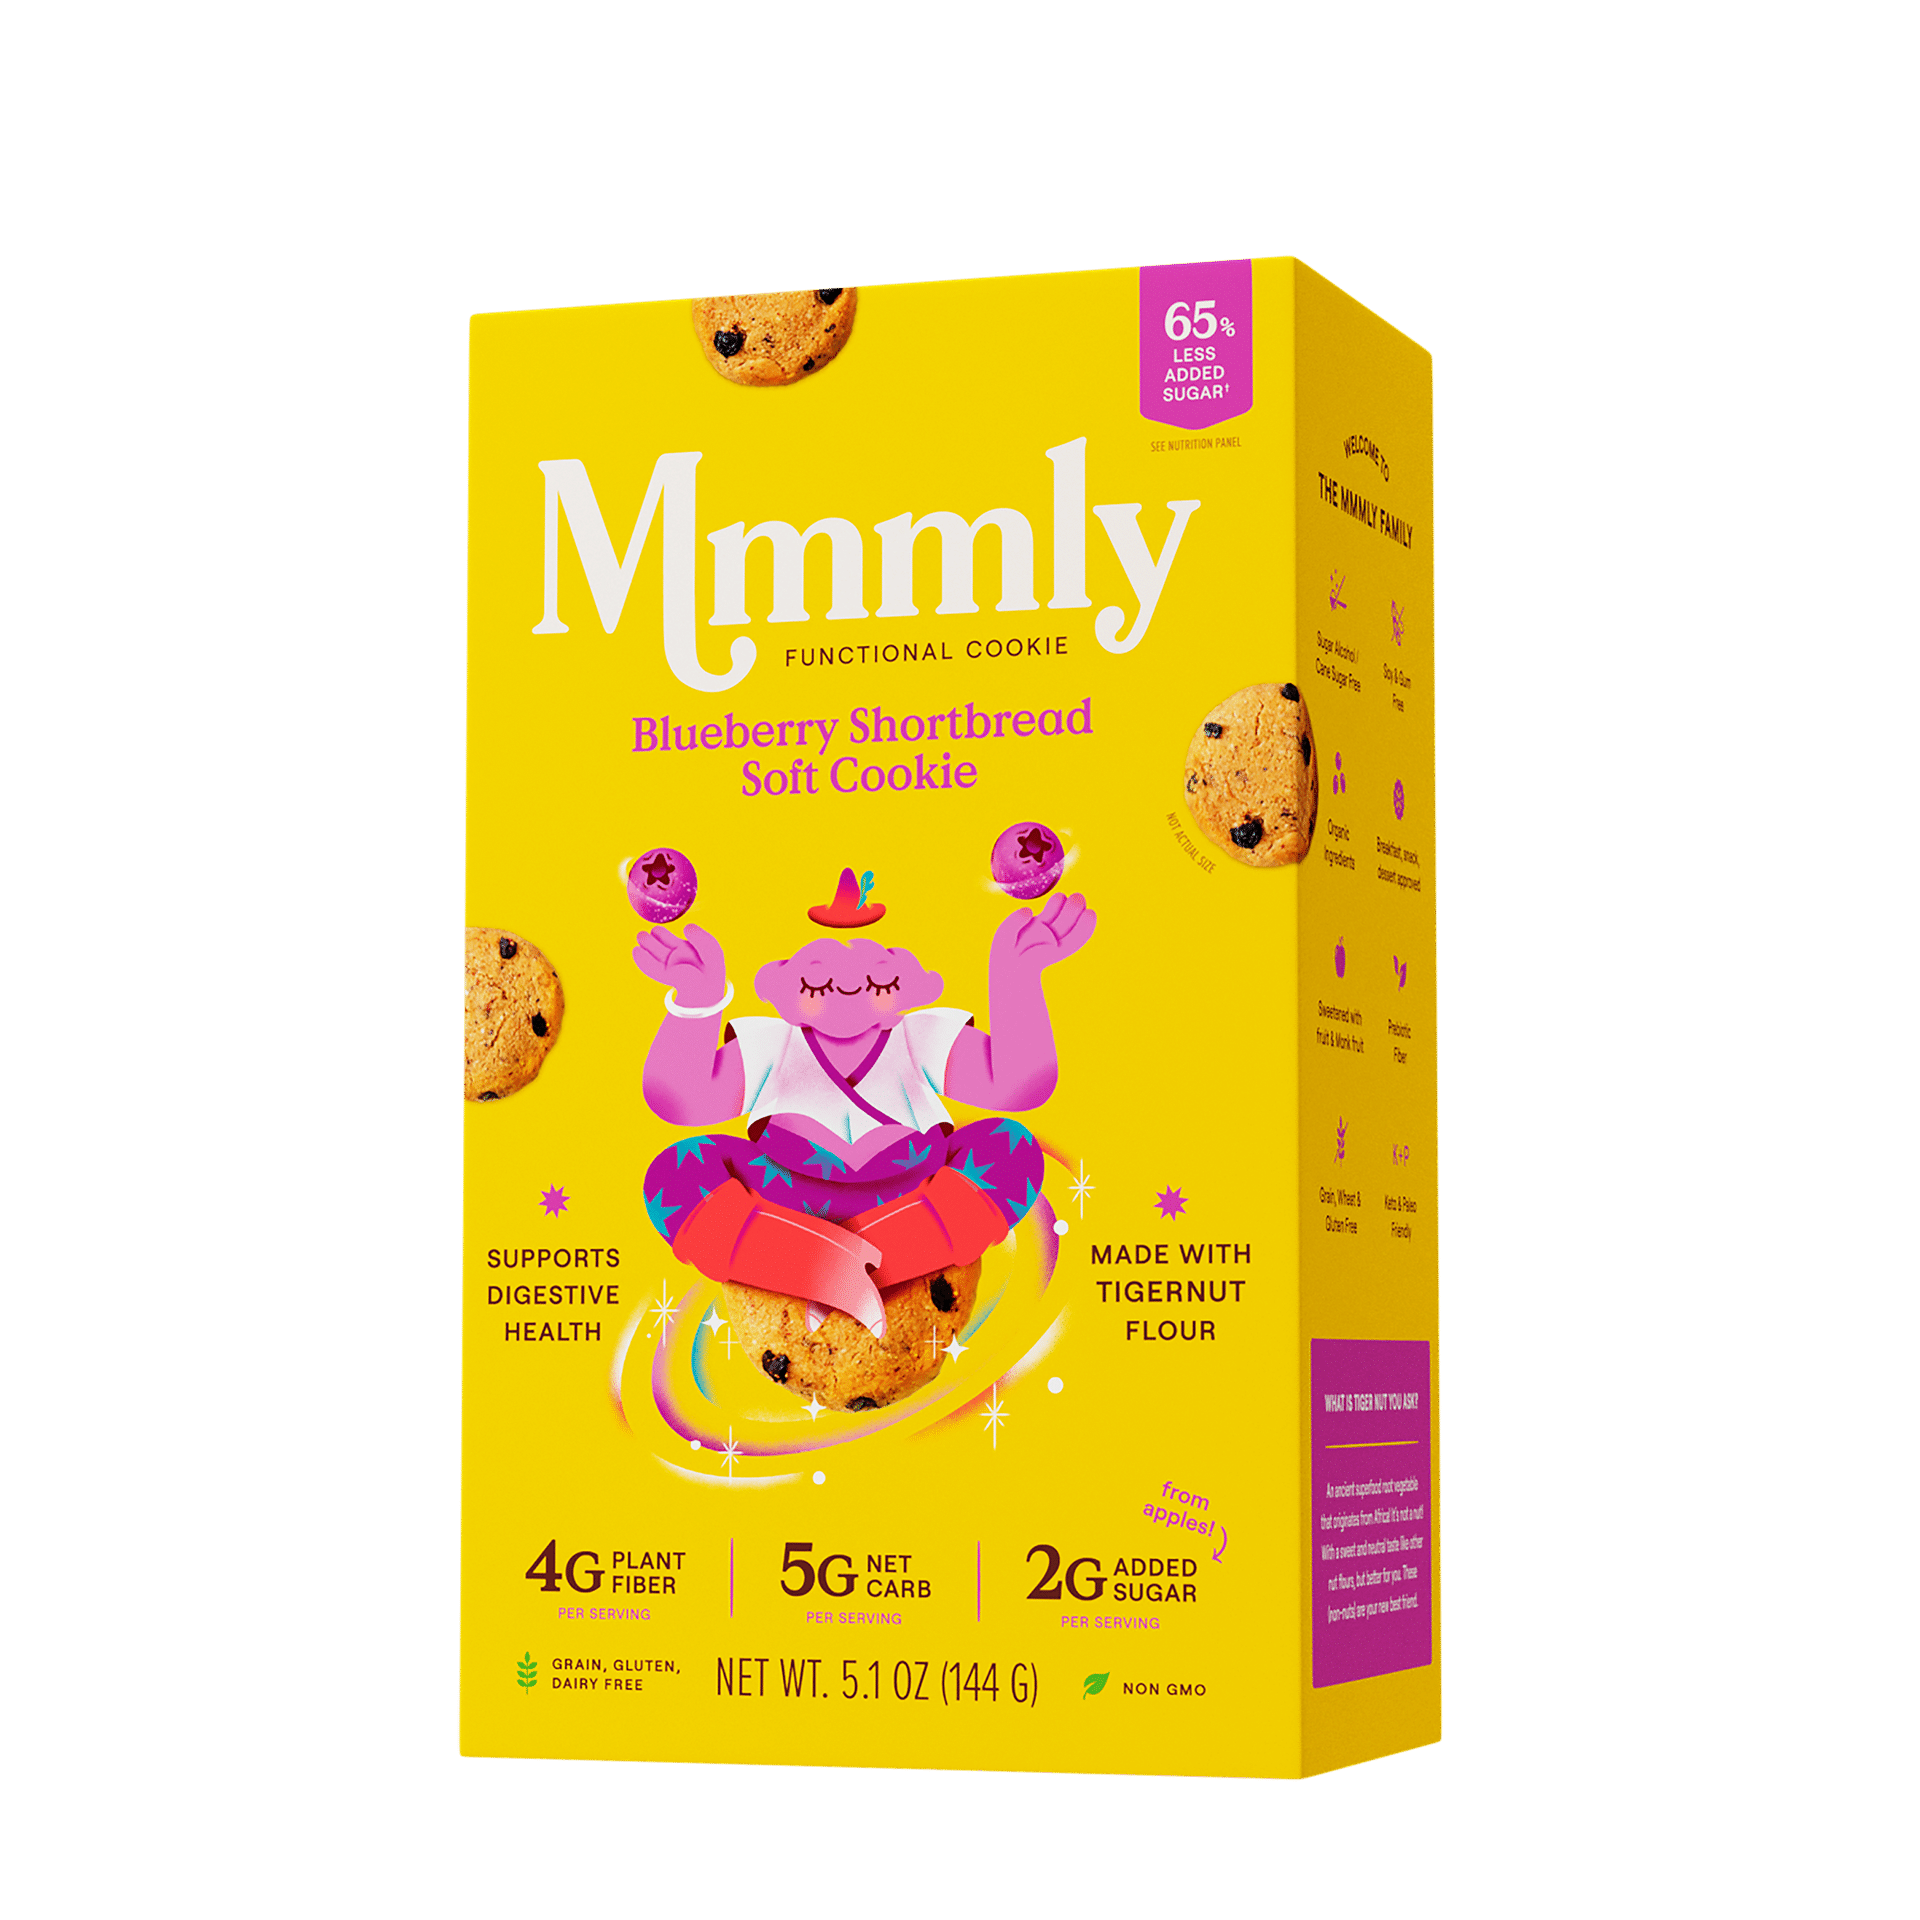 Mmmly Formally Announces Brand Launch